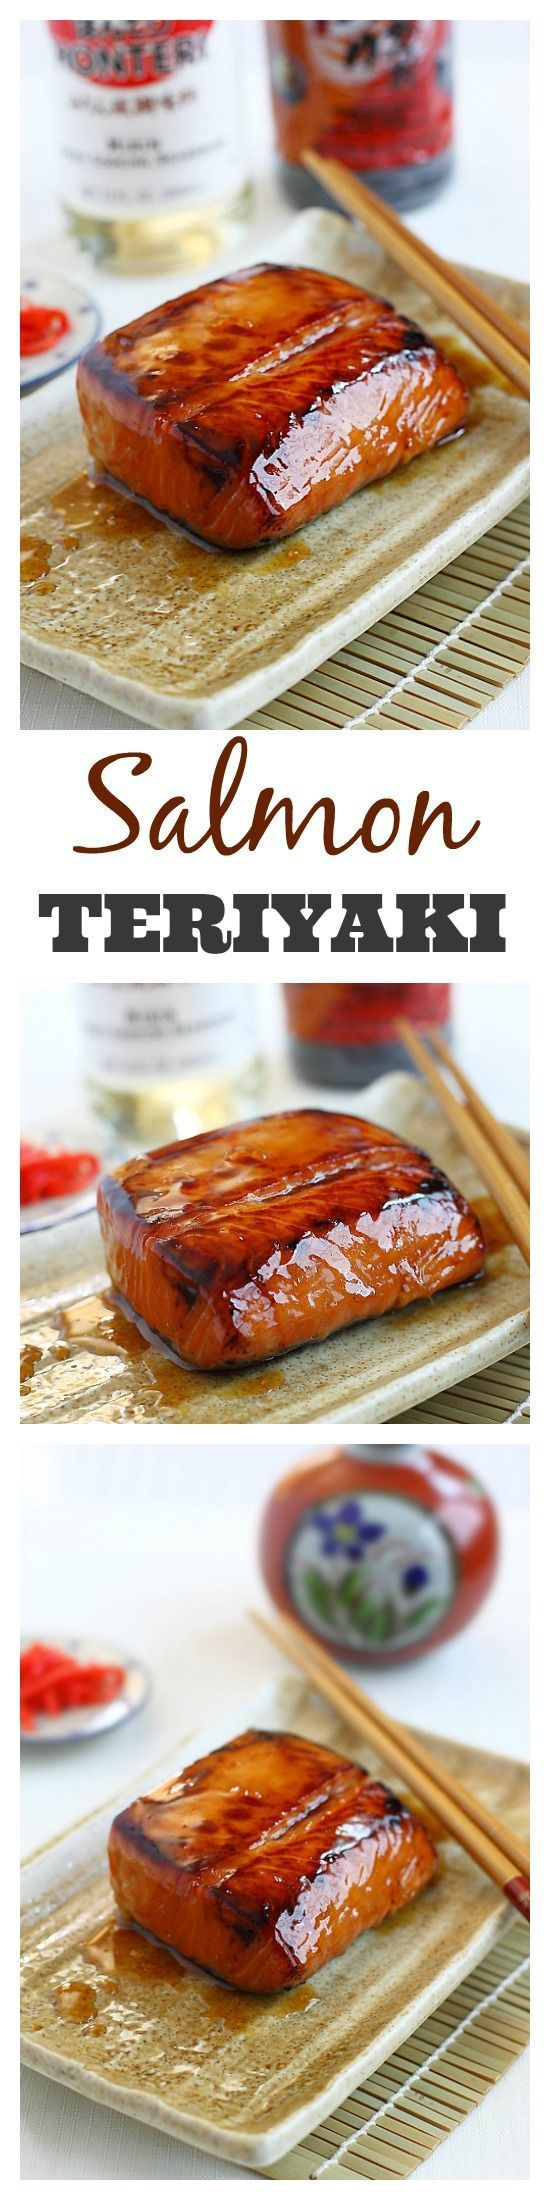 Salmon Teriyaki – moist and juicy pan-seared salmon with teriyaki sauce. This easy salmon teriyaki recipe takes only 4 ingredients!